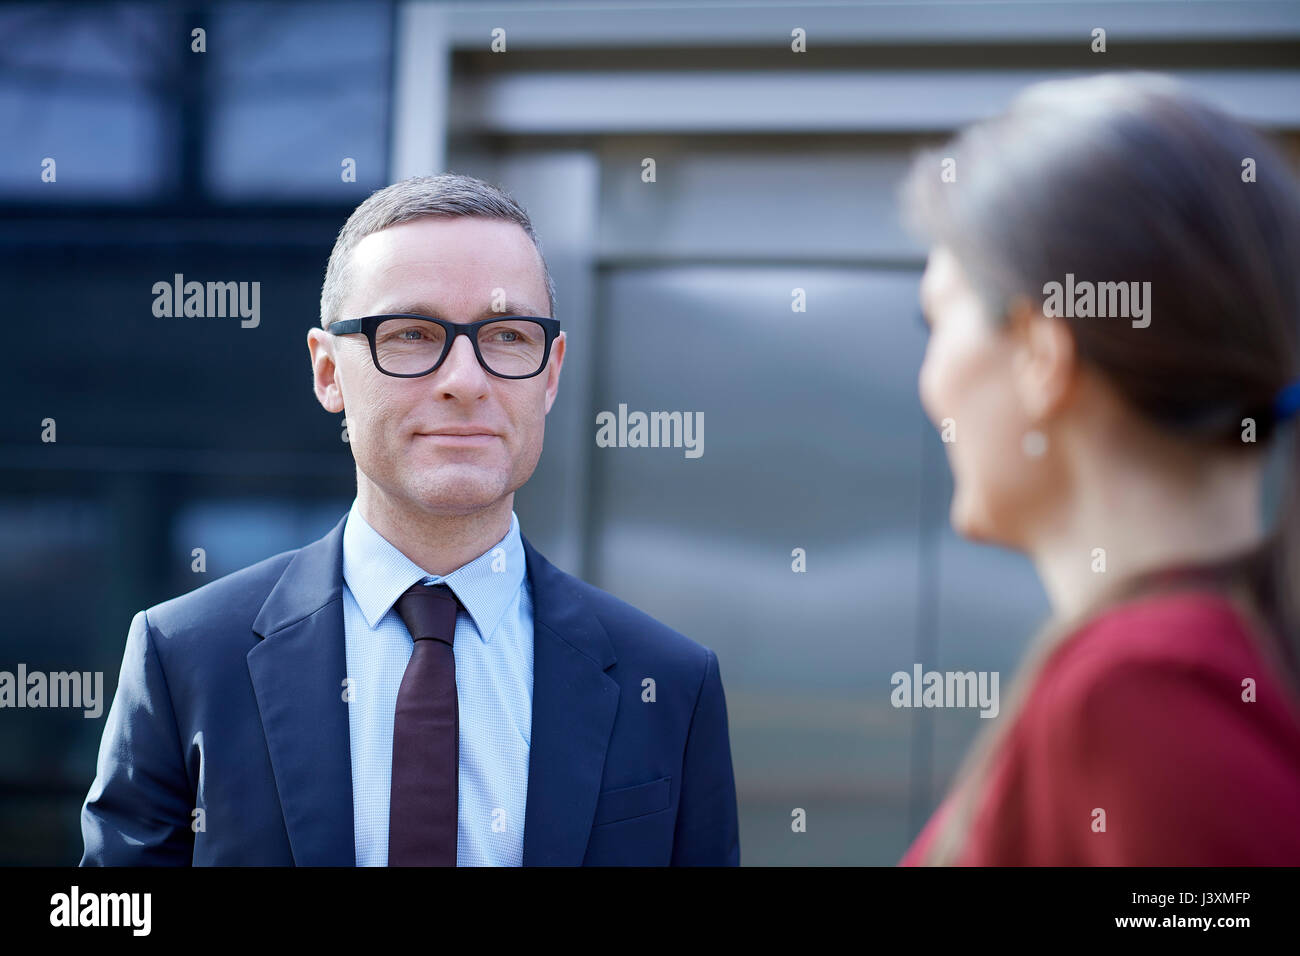 Over shoulder view of businessman approaching woman in office - Stock Image